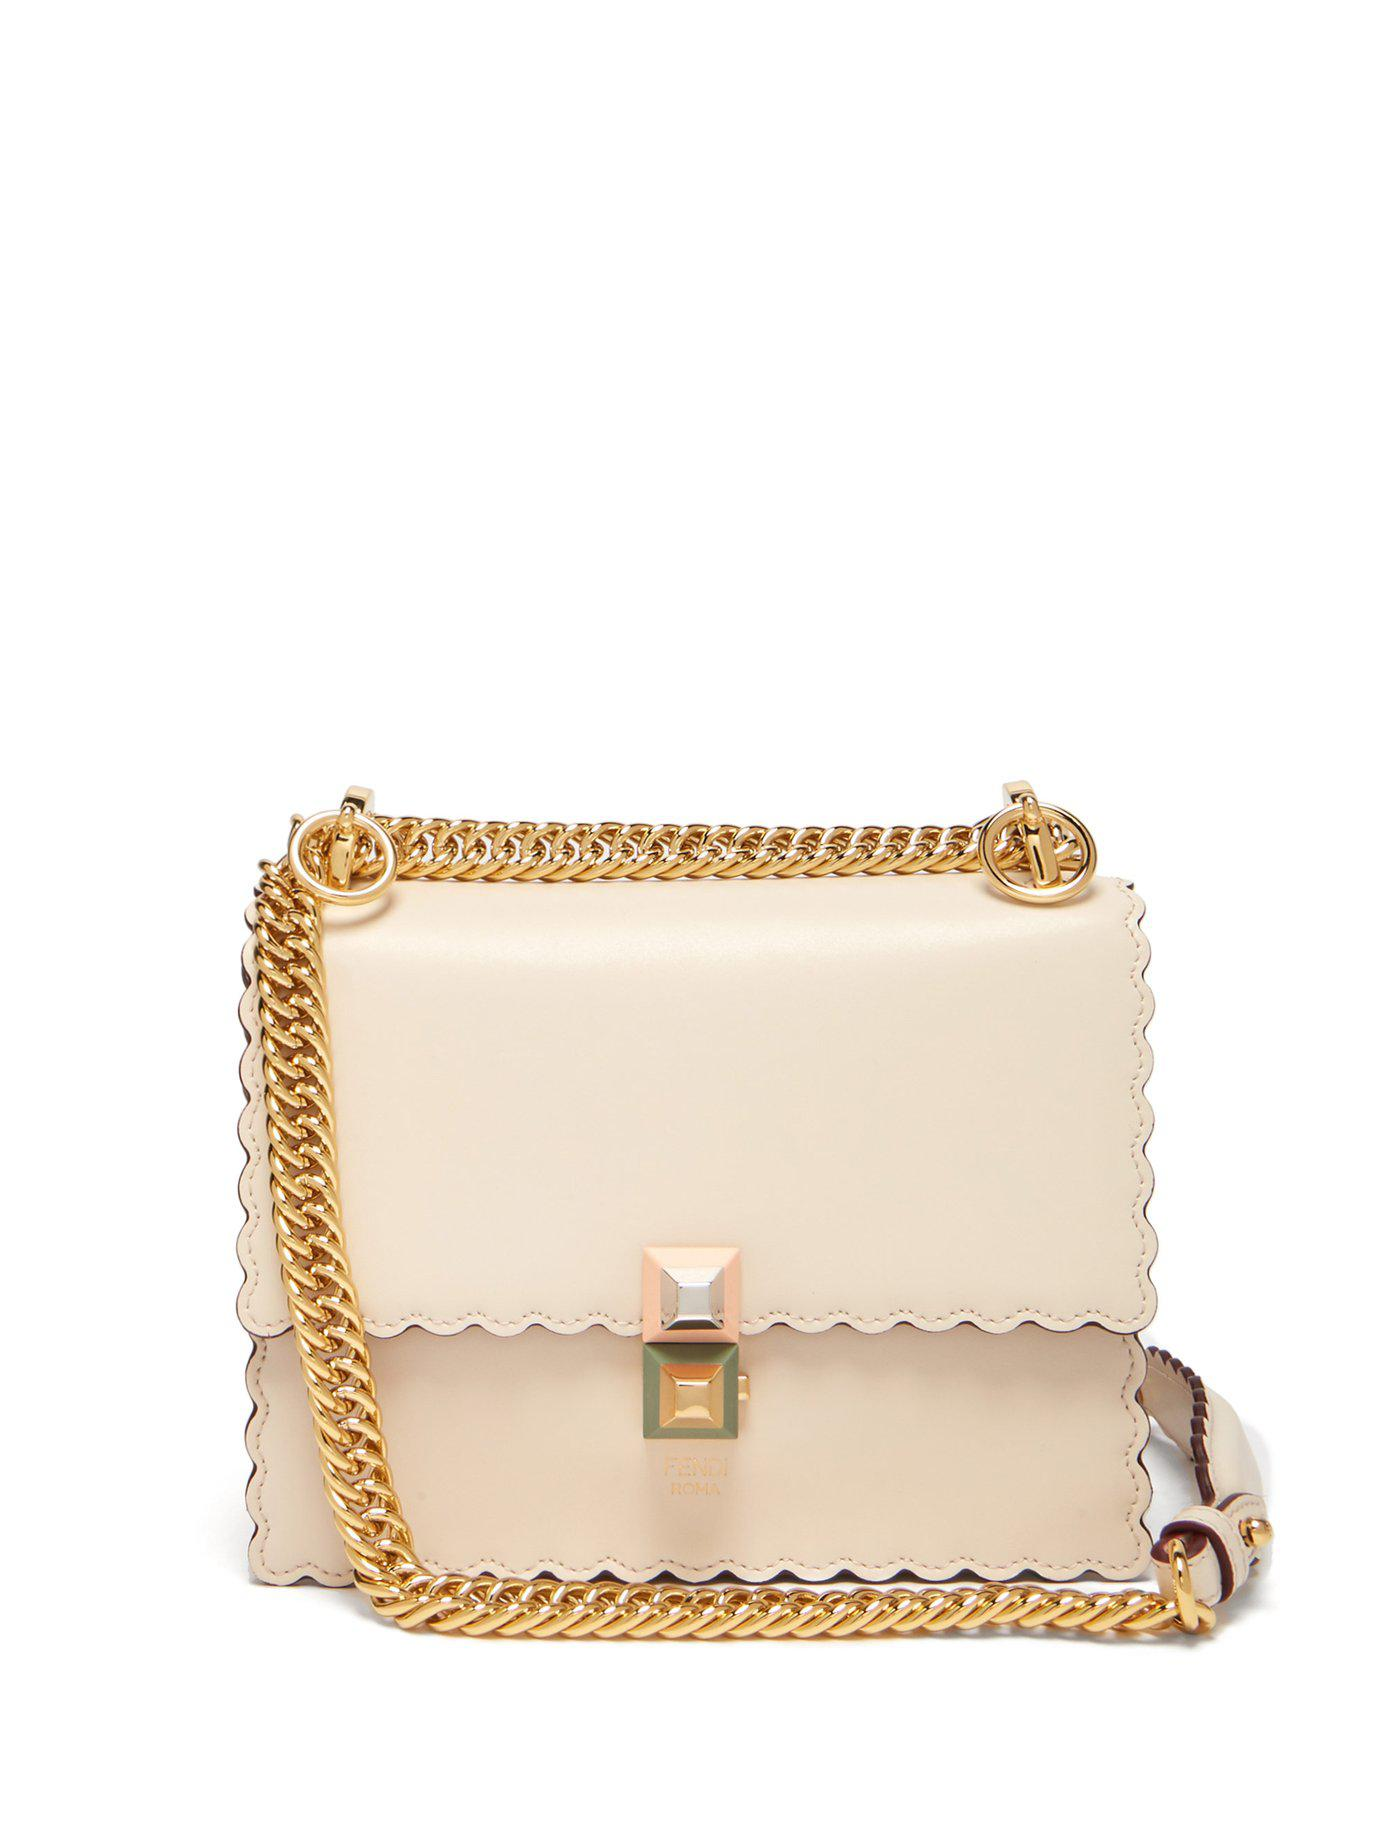 9fcb29518022 Lyst - Fendi Kan I Small Leather Cross Body Bag in Natural